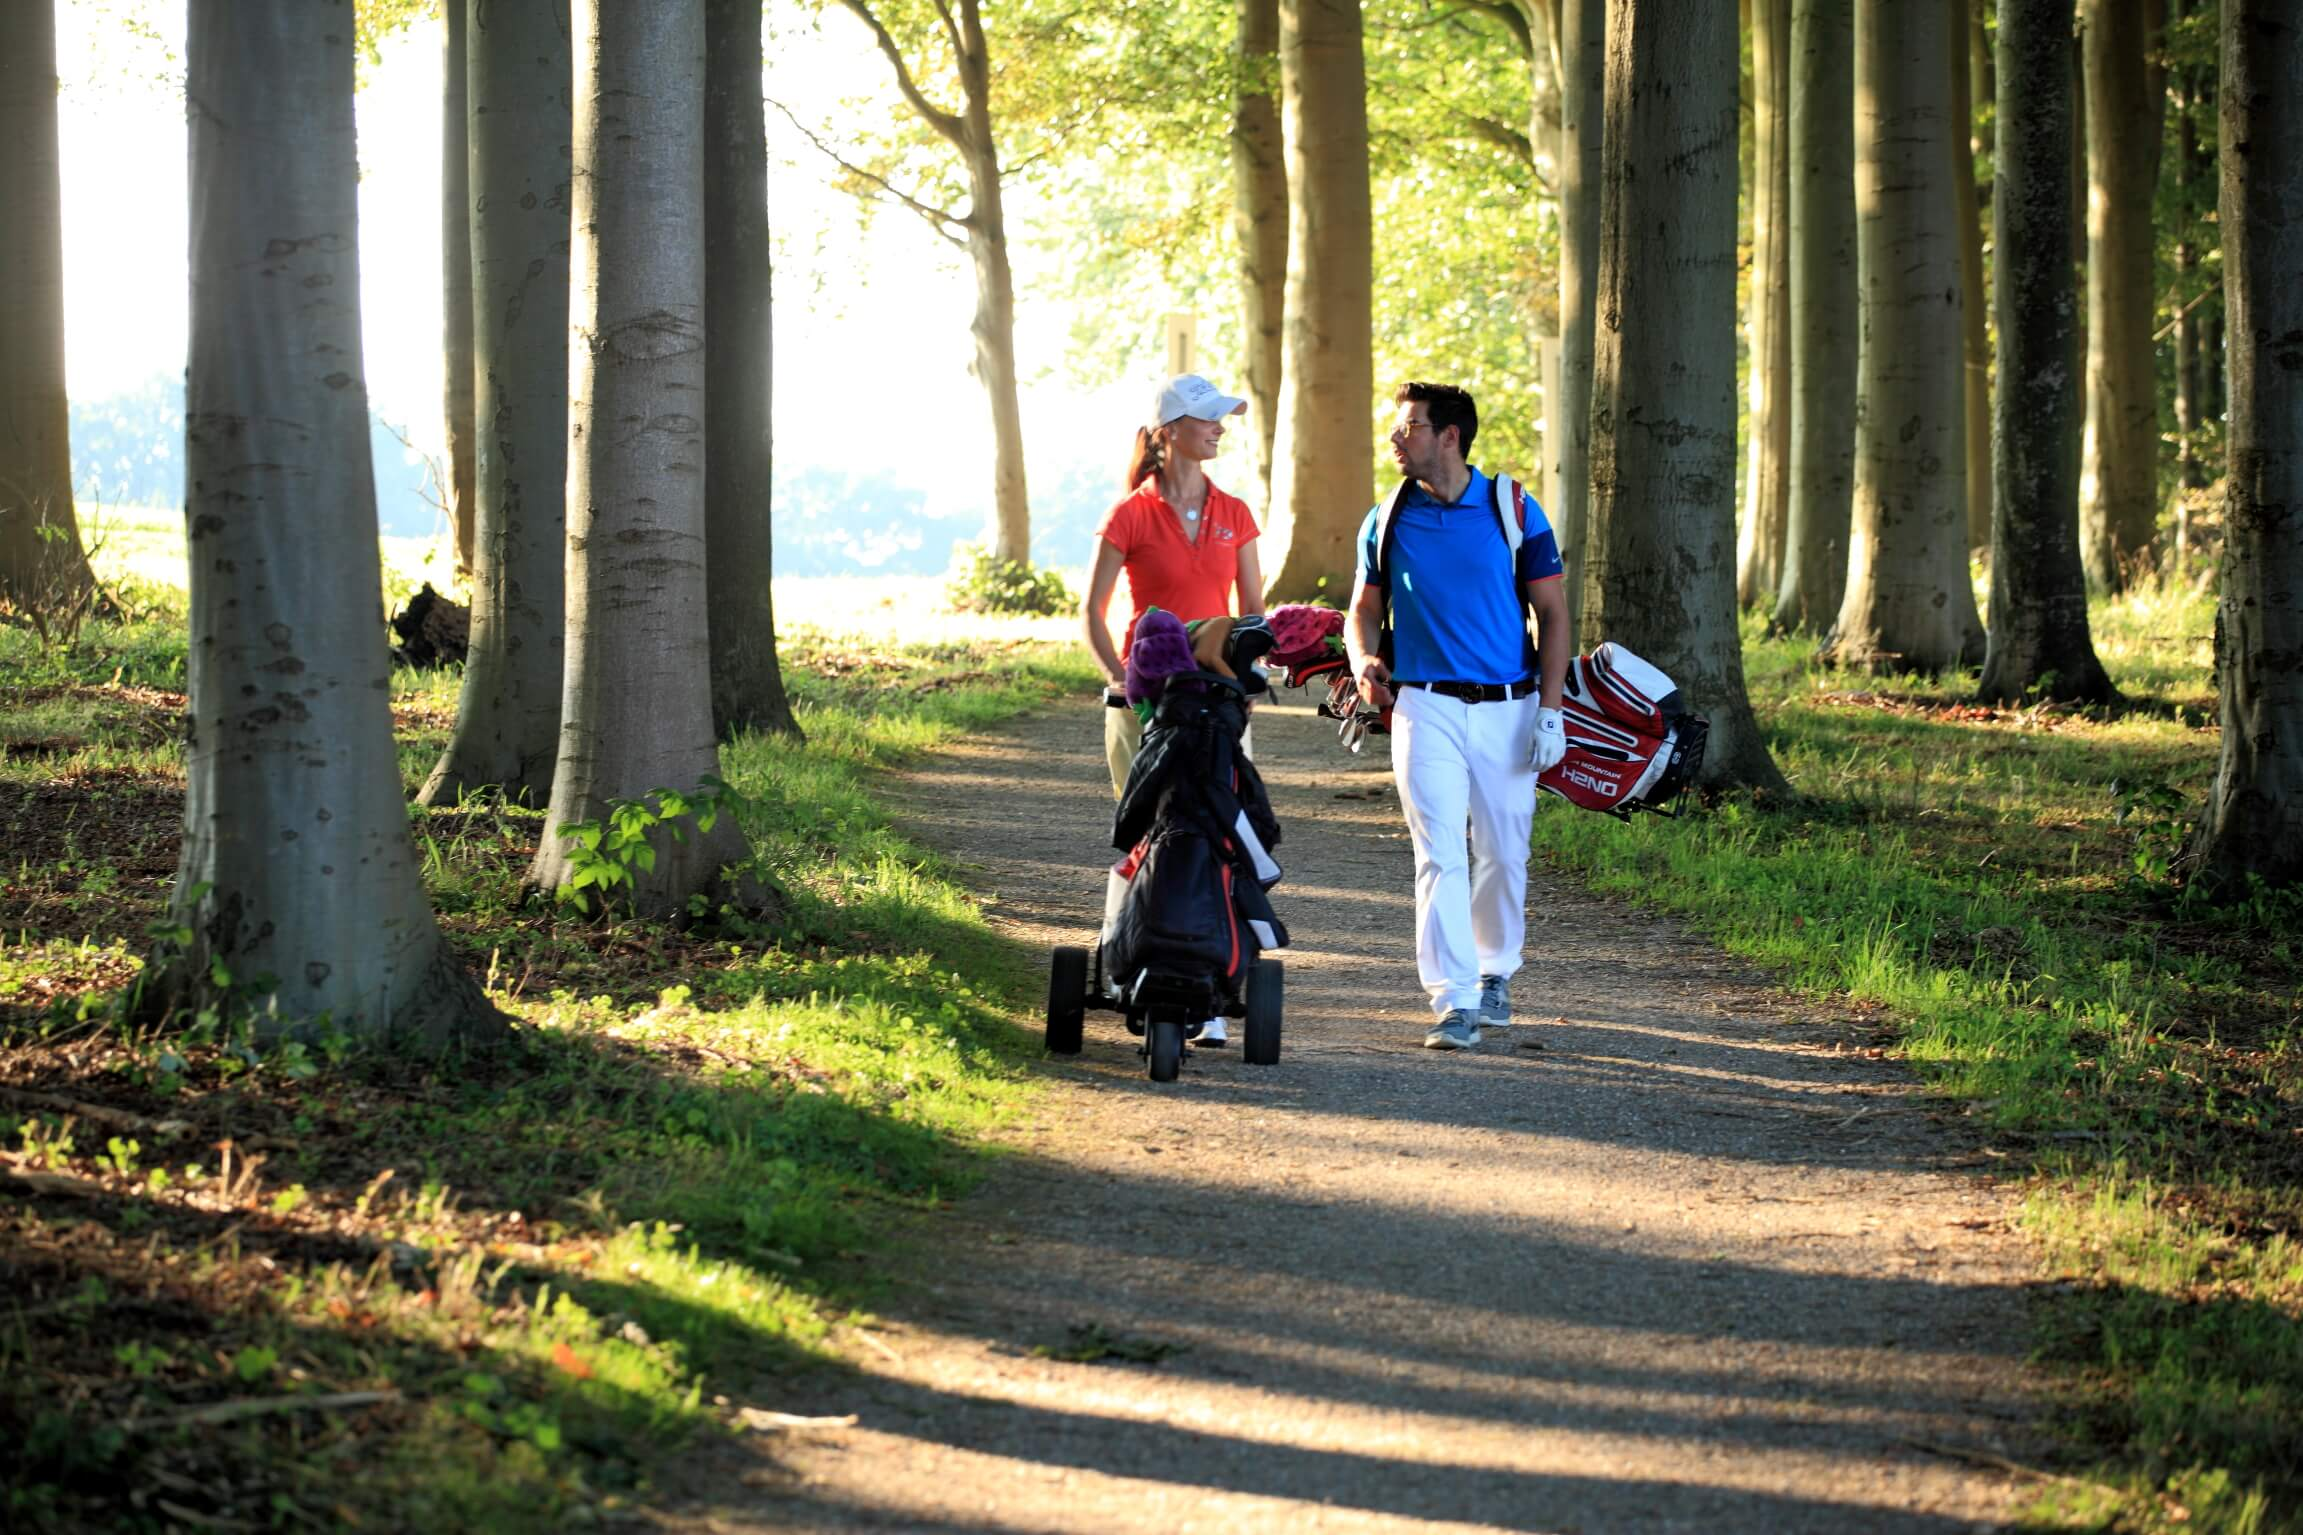 Golf-& Landclub Gut Uhlenhorst Trolley-Weg